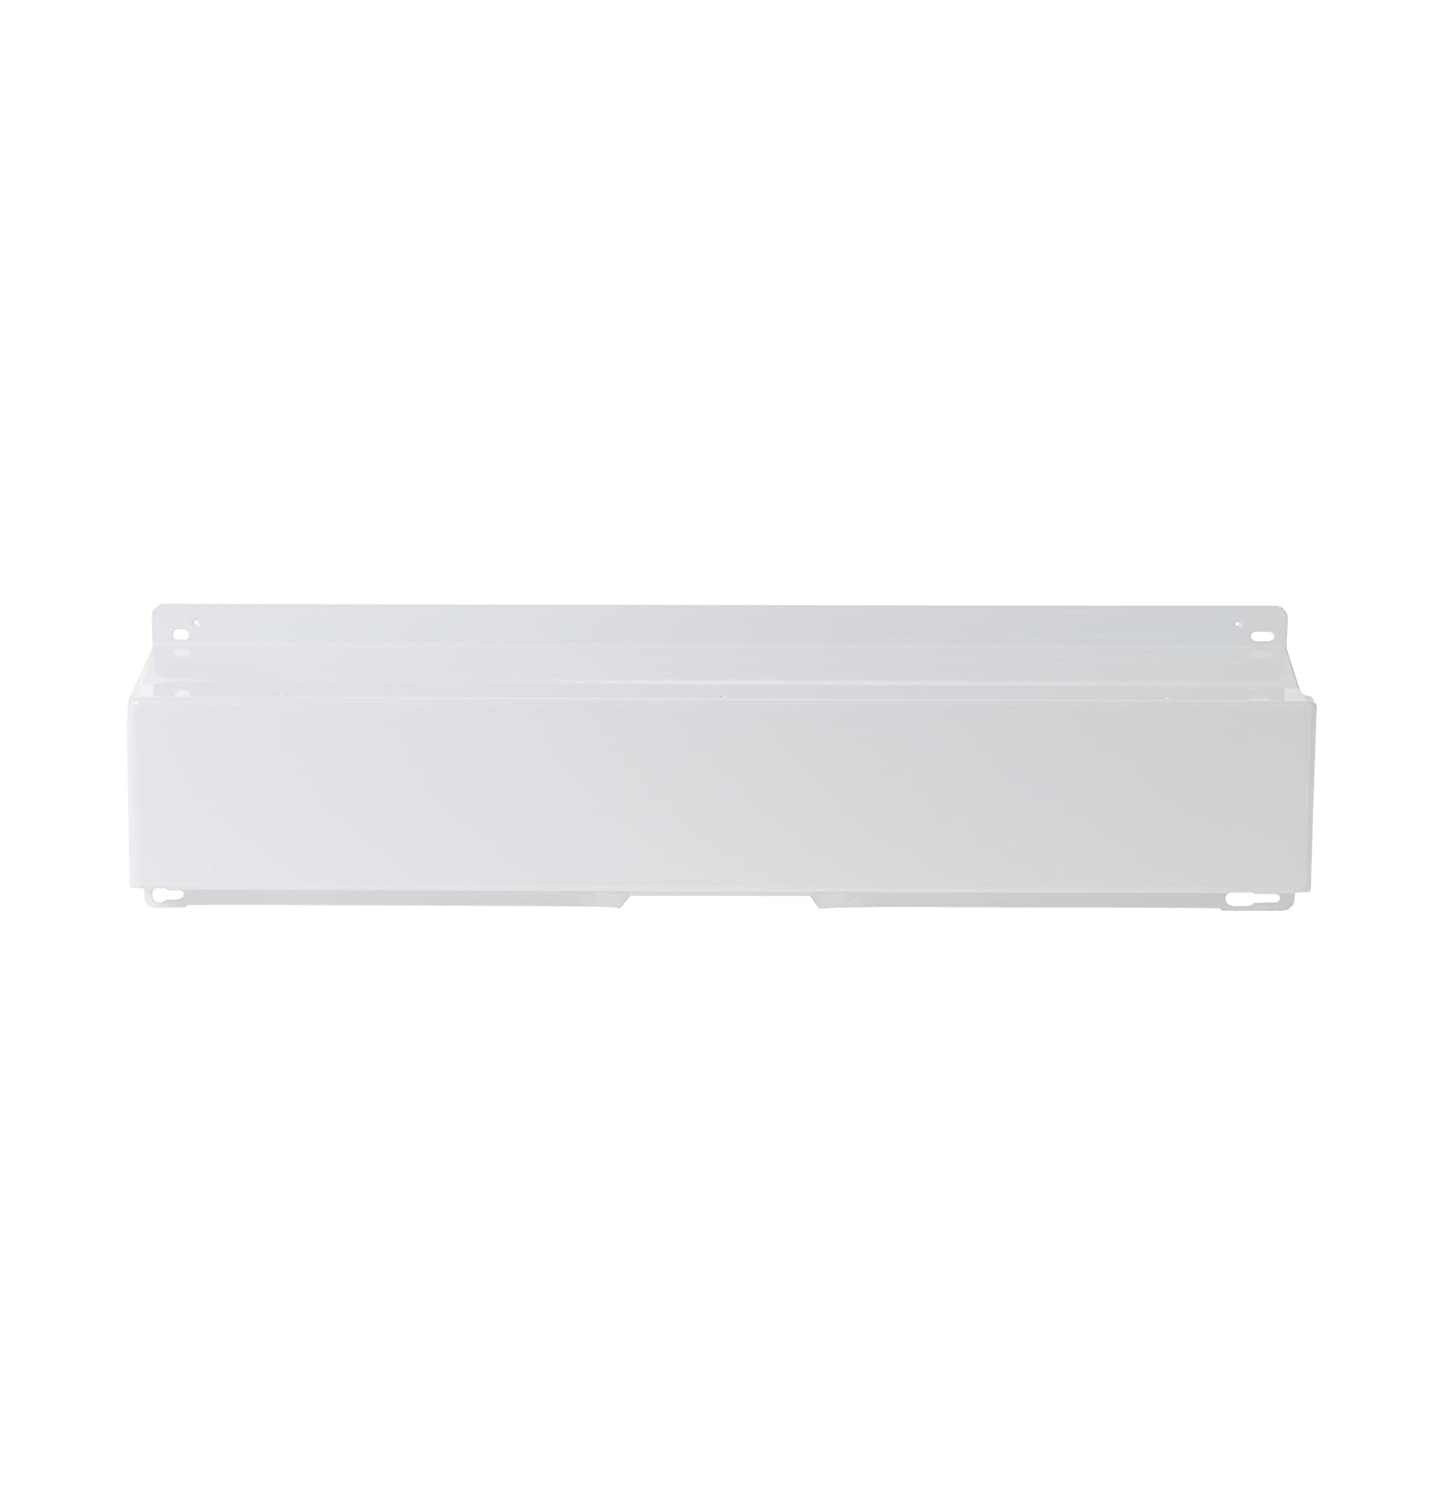 General Electric WD27X10225 Dishwasher Access Panel